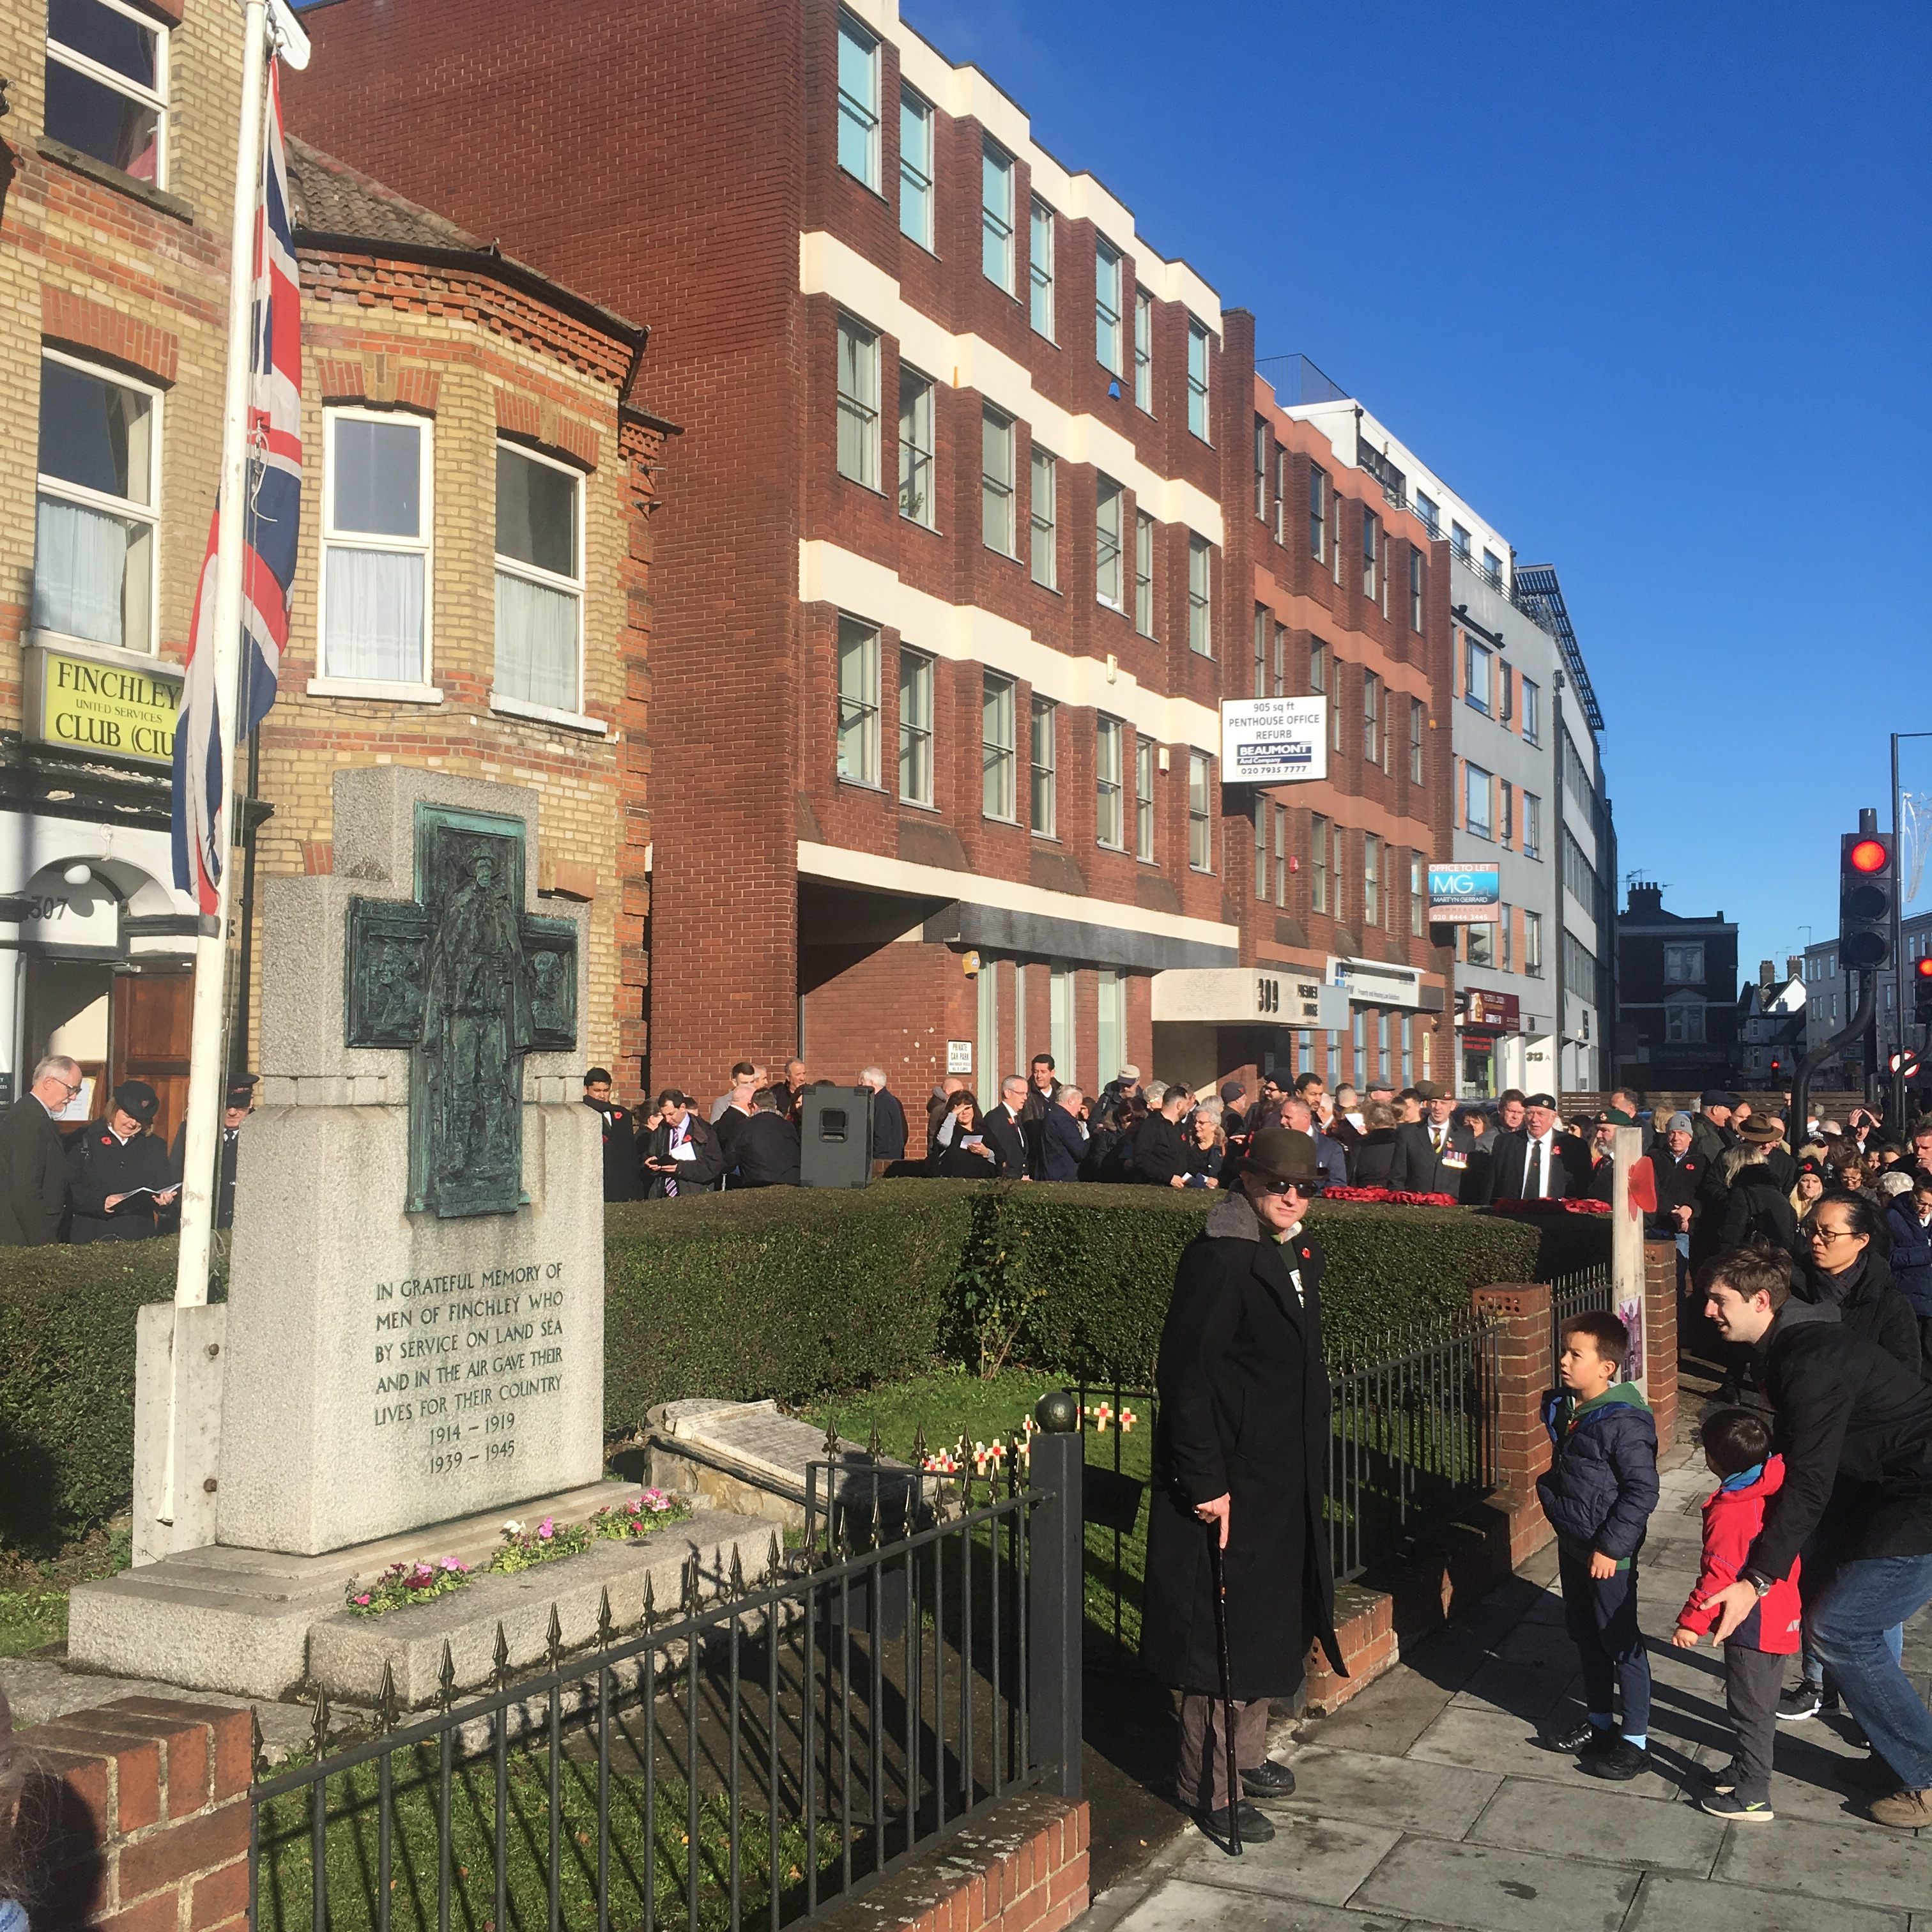 Finchley War Memorial remembrance service 2018